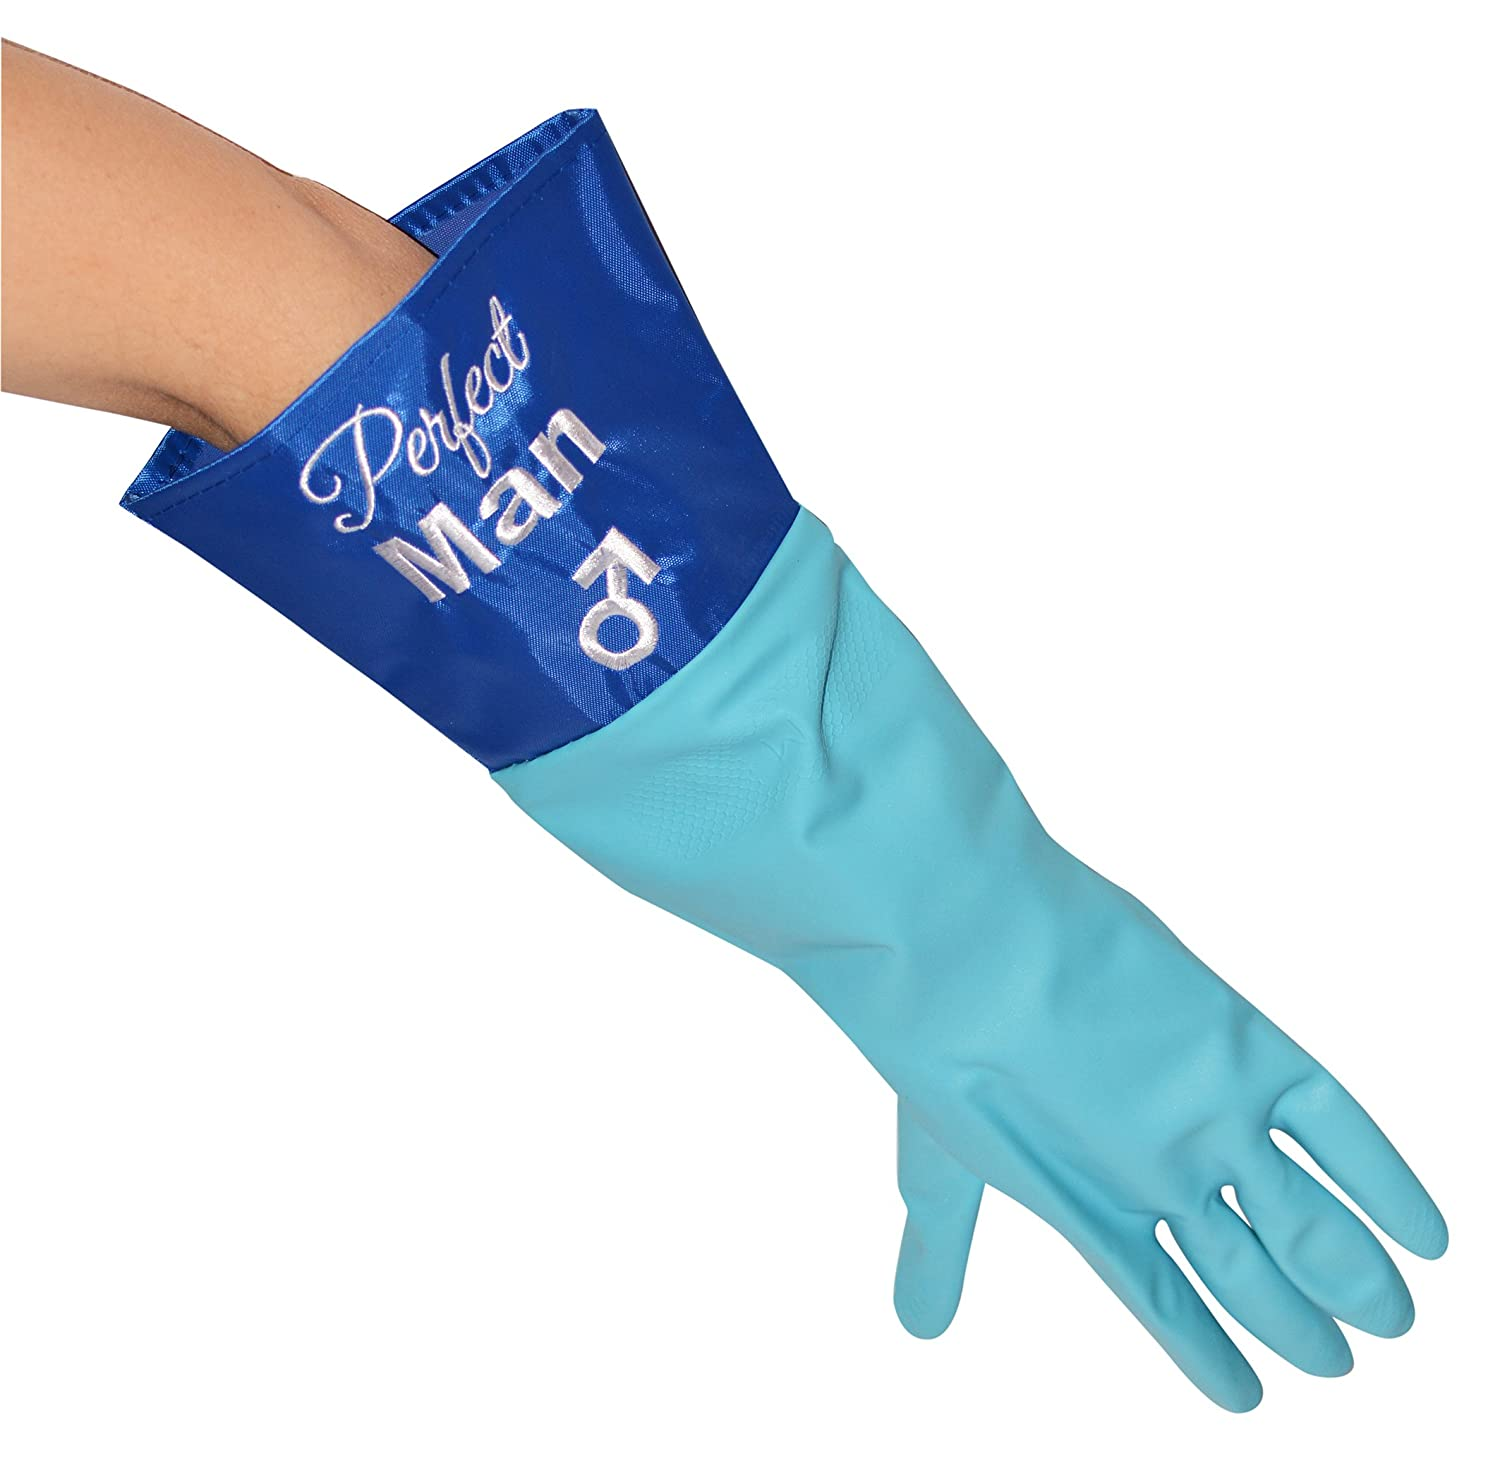 Mens novelty gloves - Perfect Man Washing Up Gloves Birthday Novelty Xmas Secret Santa Gift